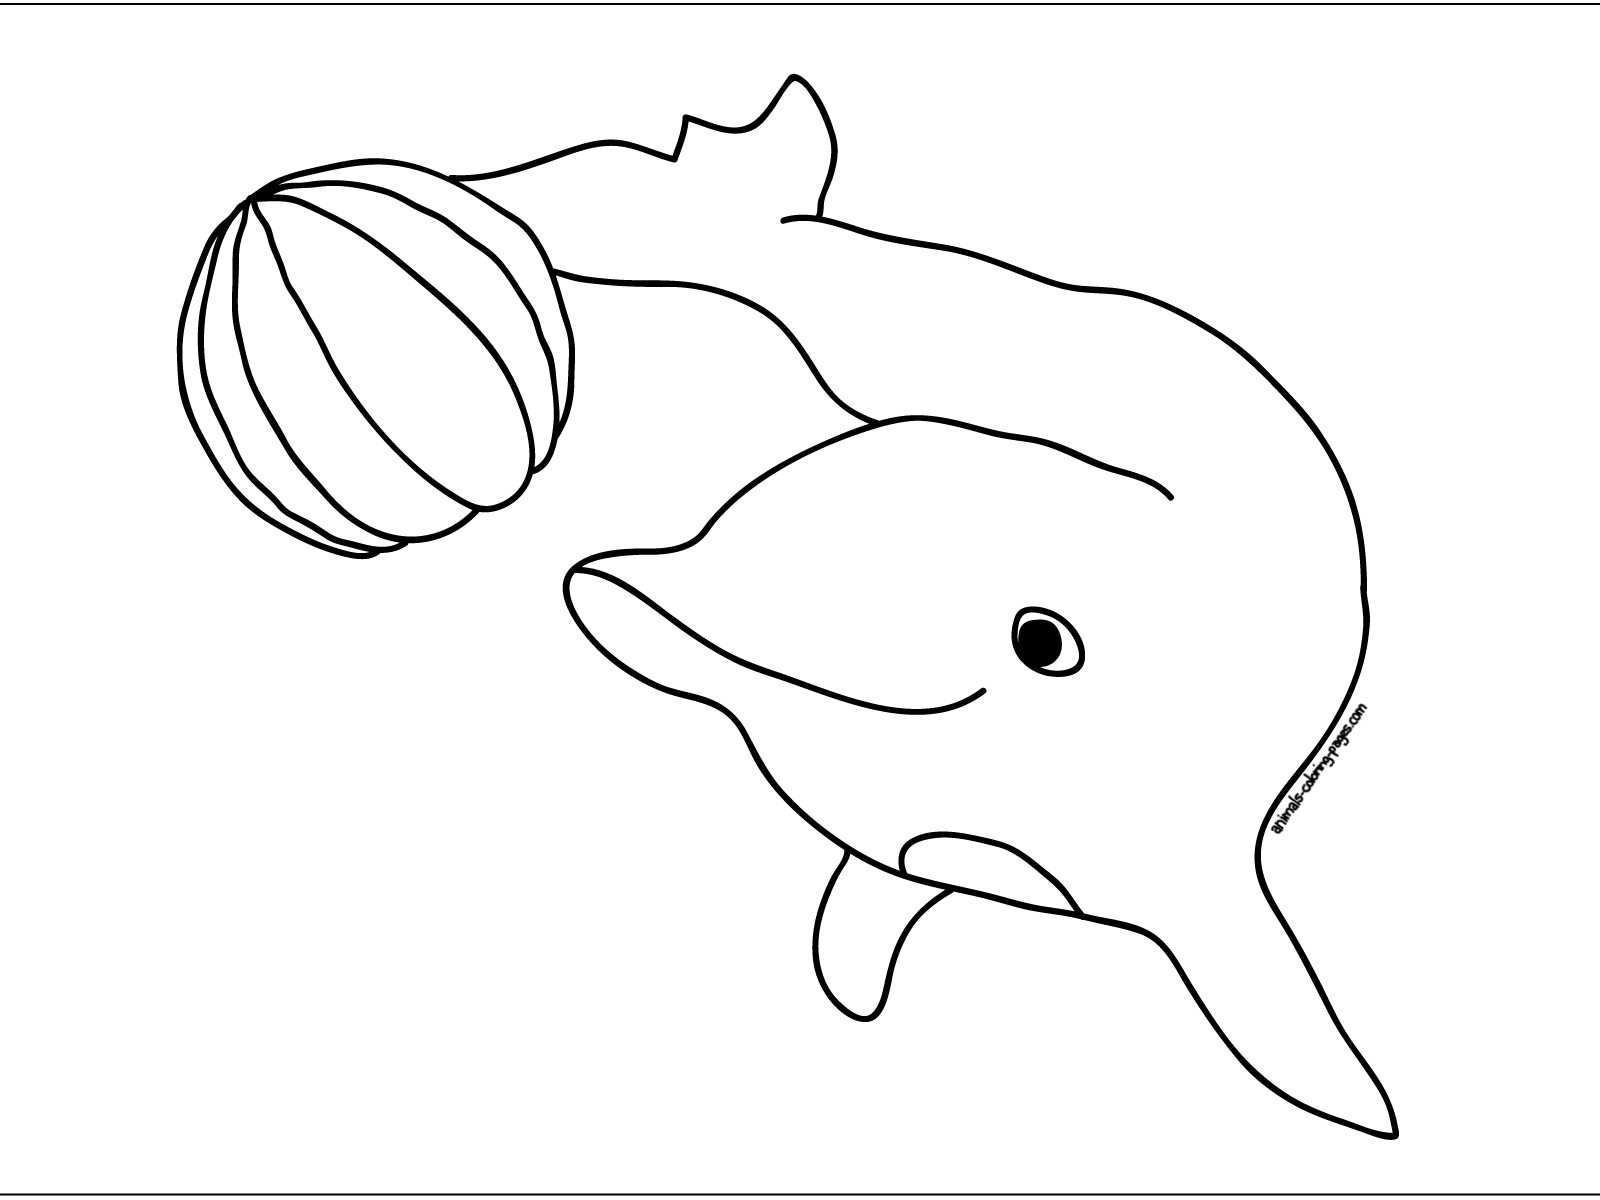 http://coloringtop.com/sites/default/files/2_1221.jpg Dolphins